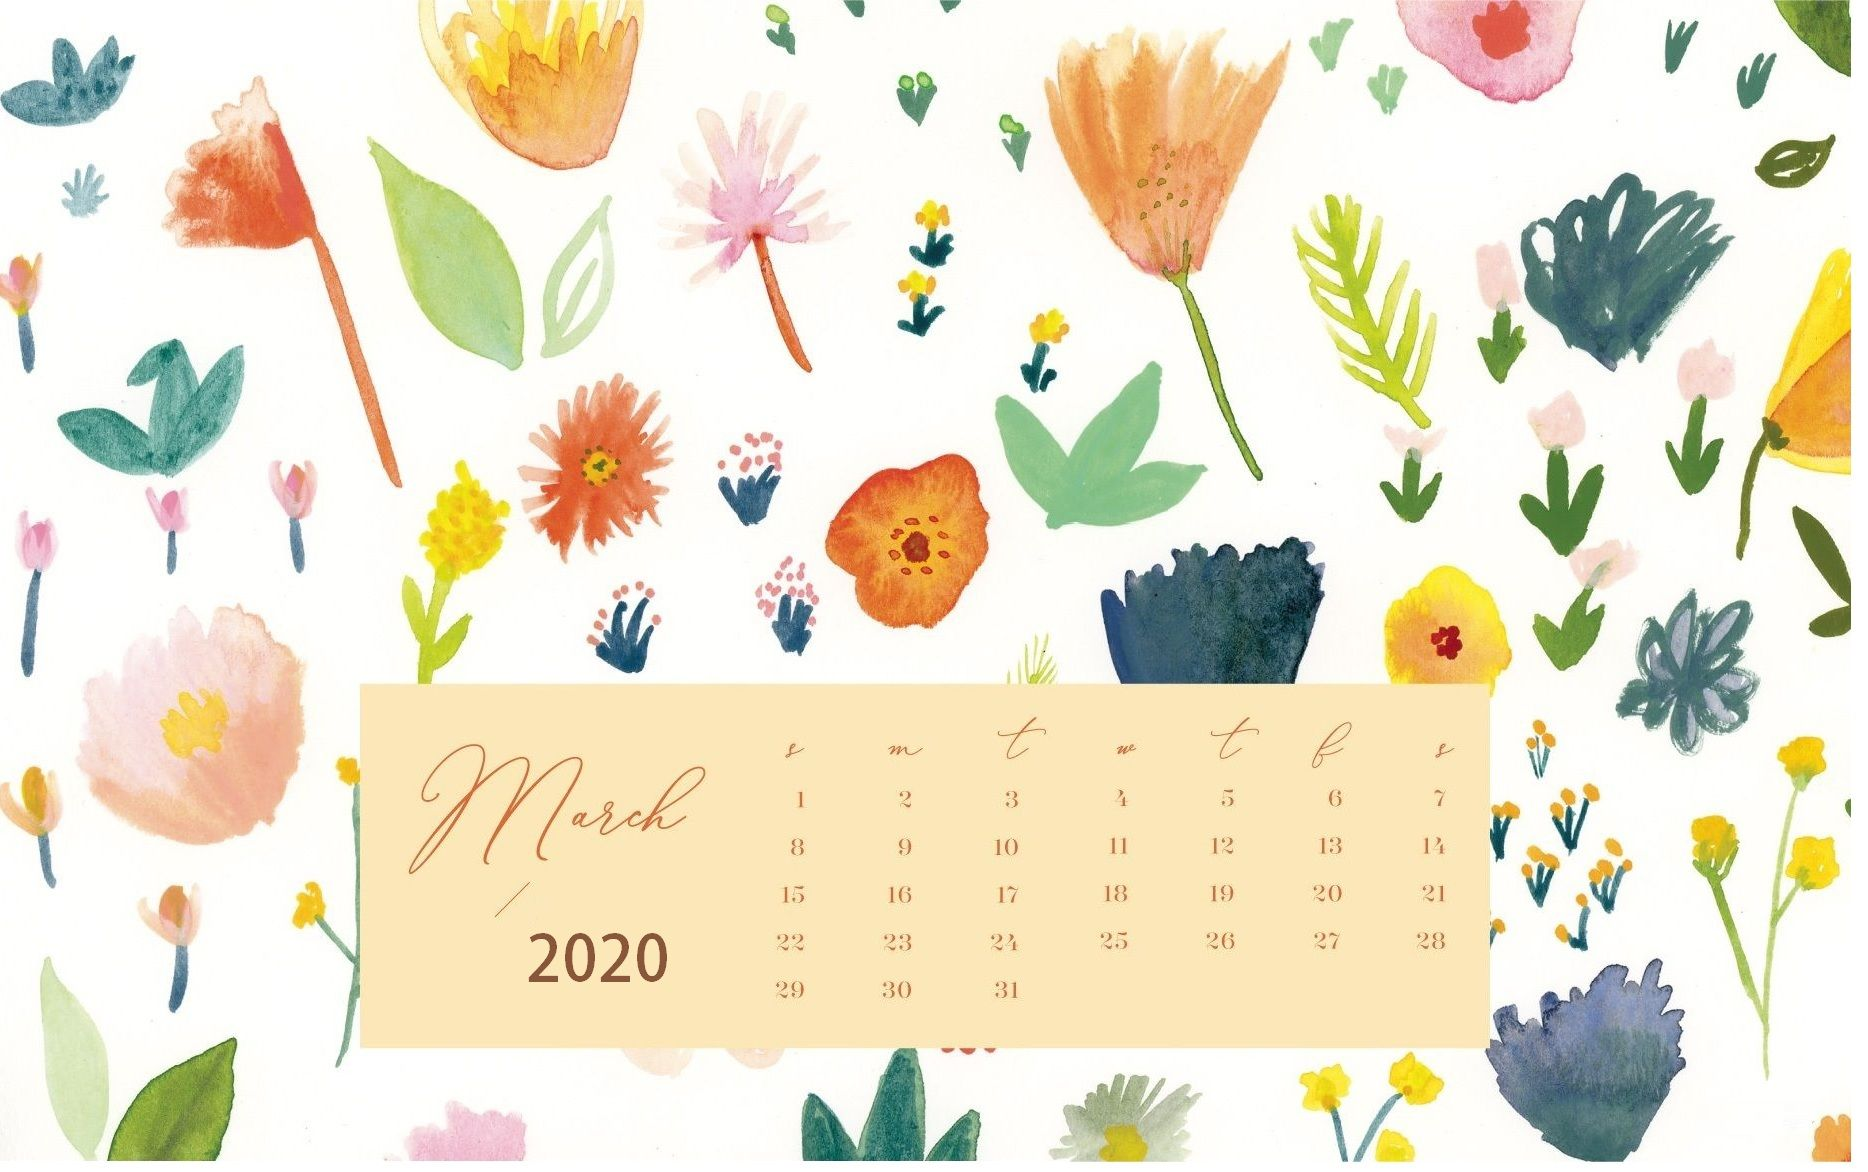 March 2020 Calendar Wallpapers Top Free March 2020 Calendar